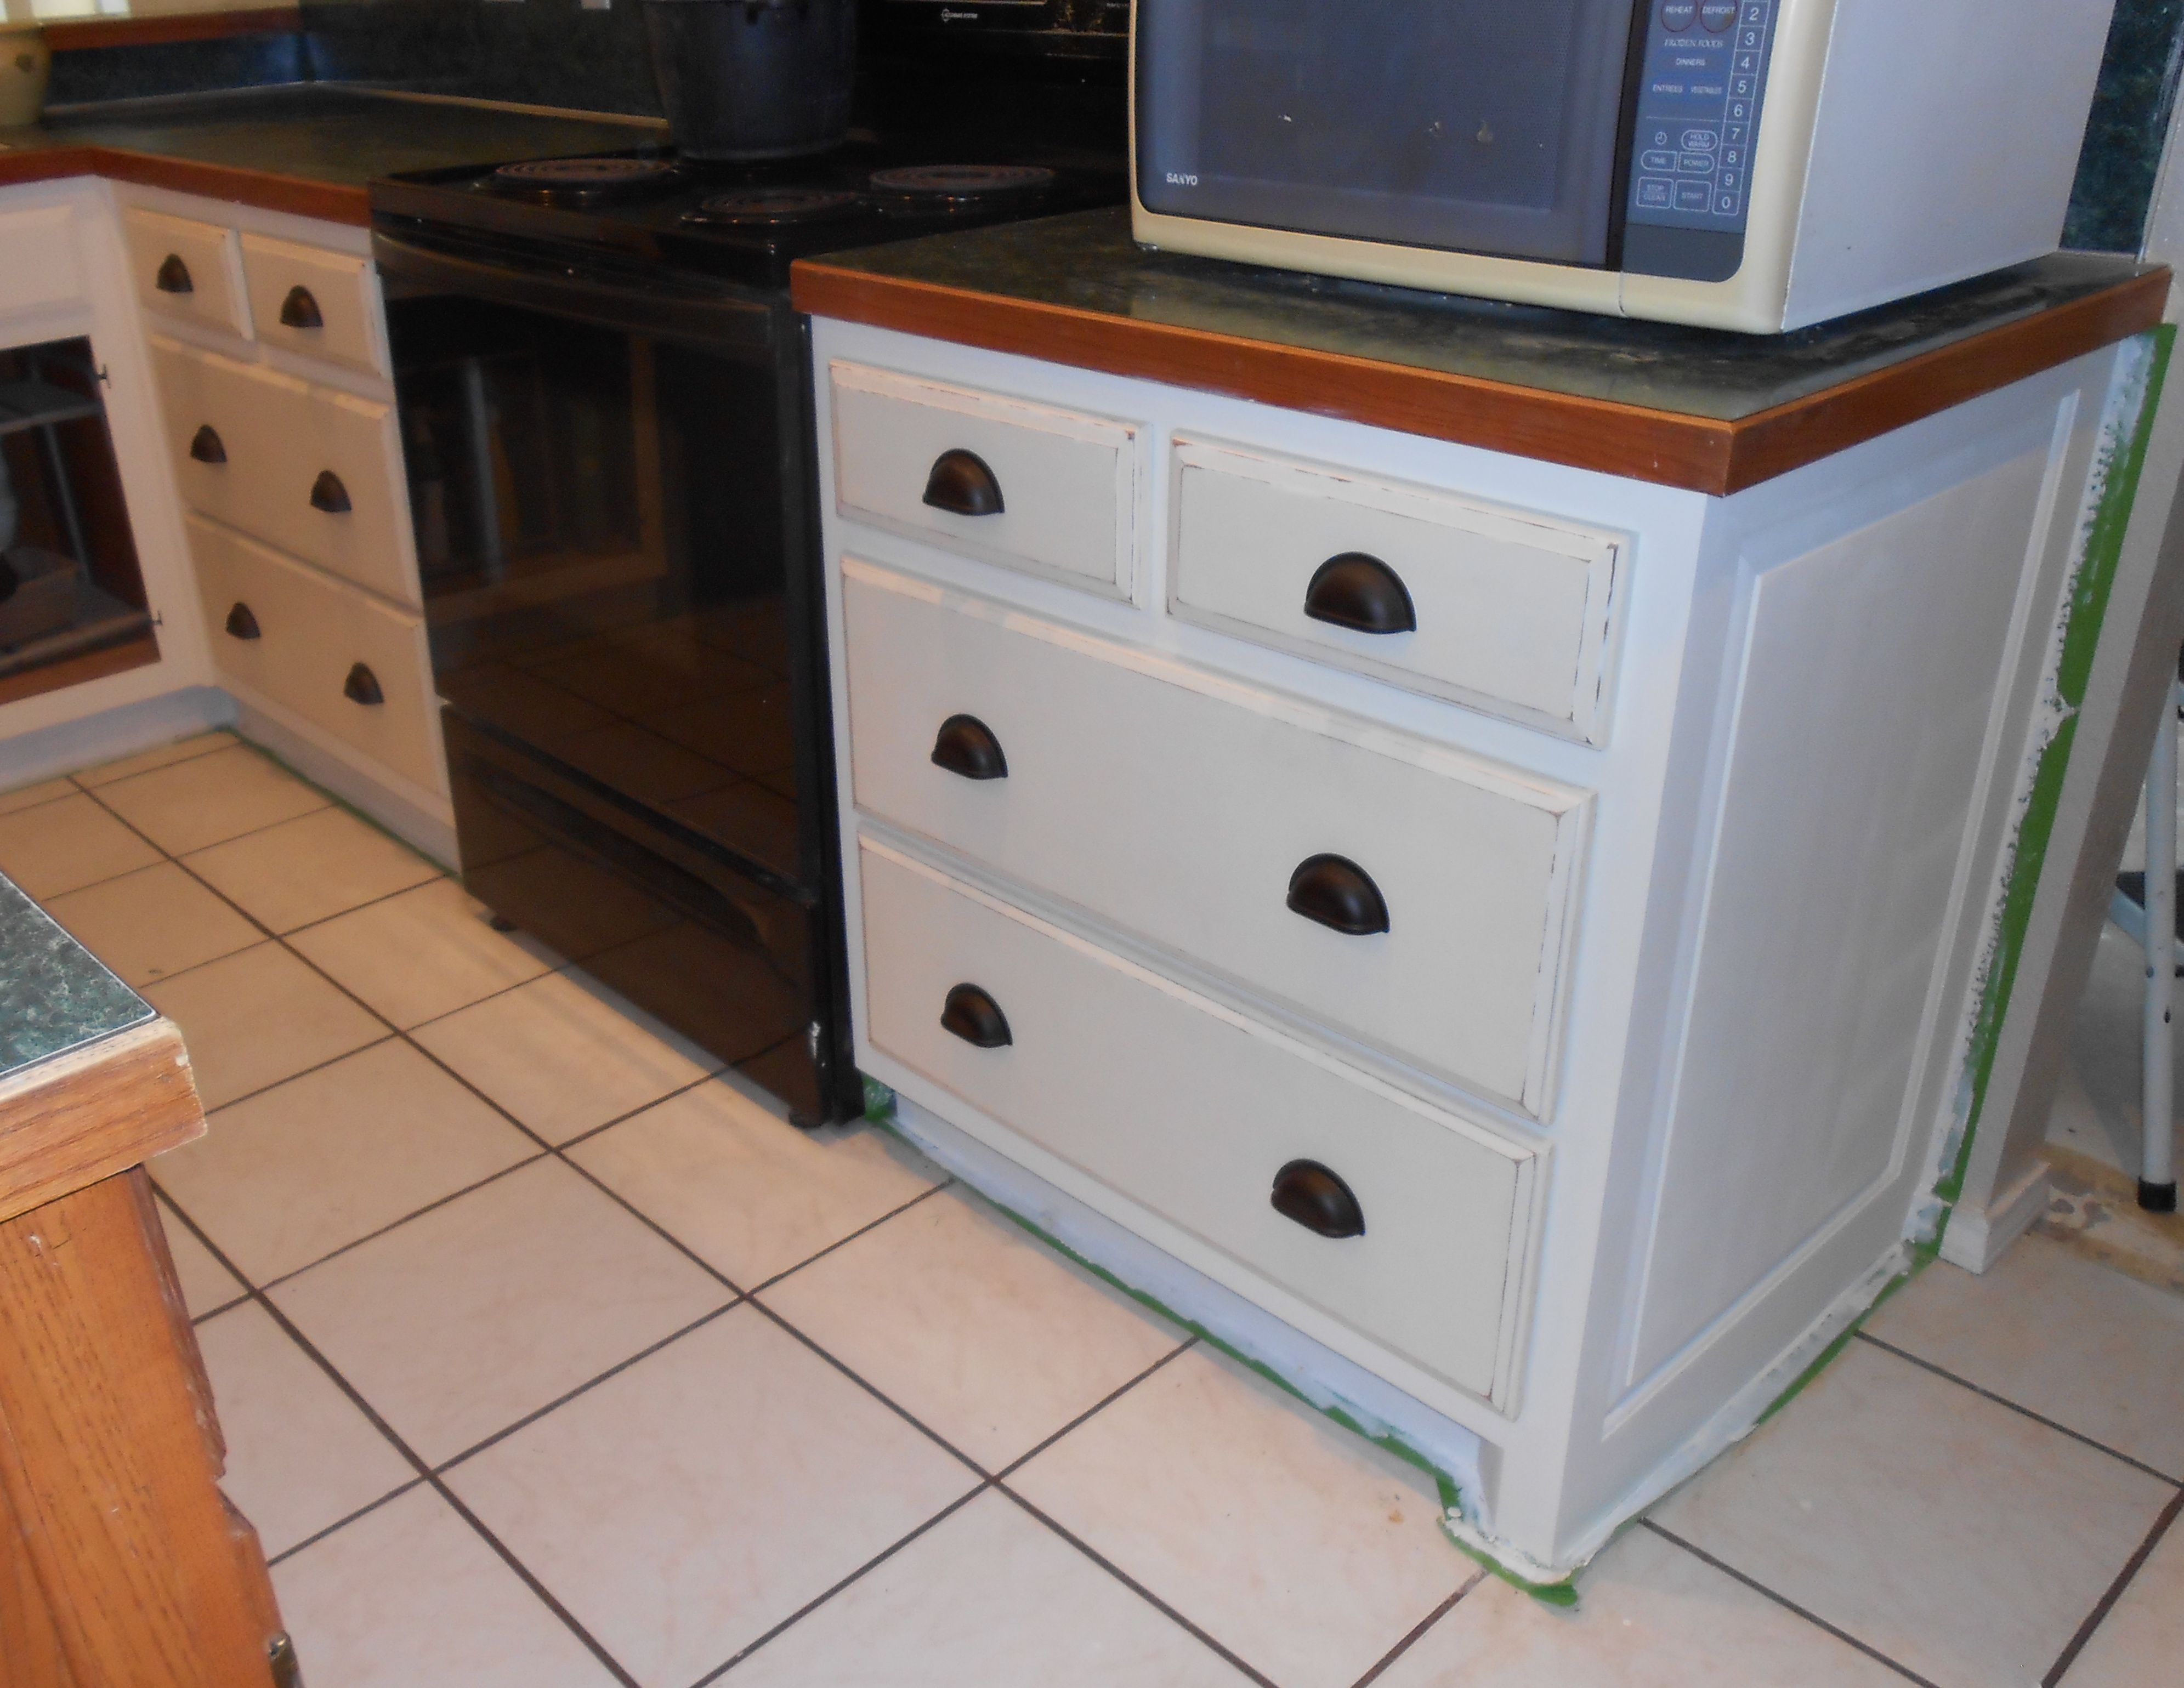 kitchen_stove_cabinet_lower1